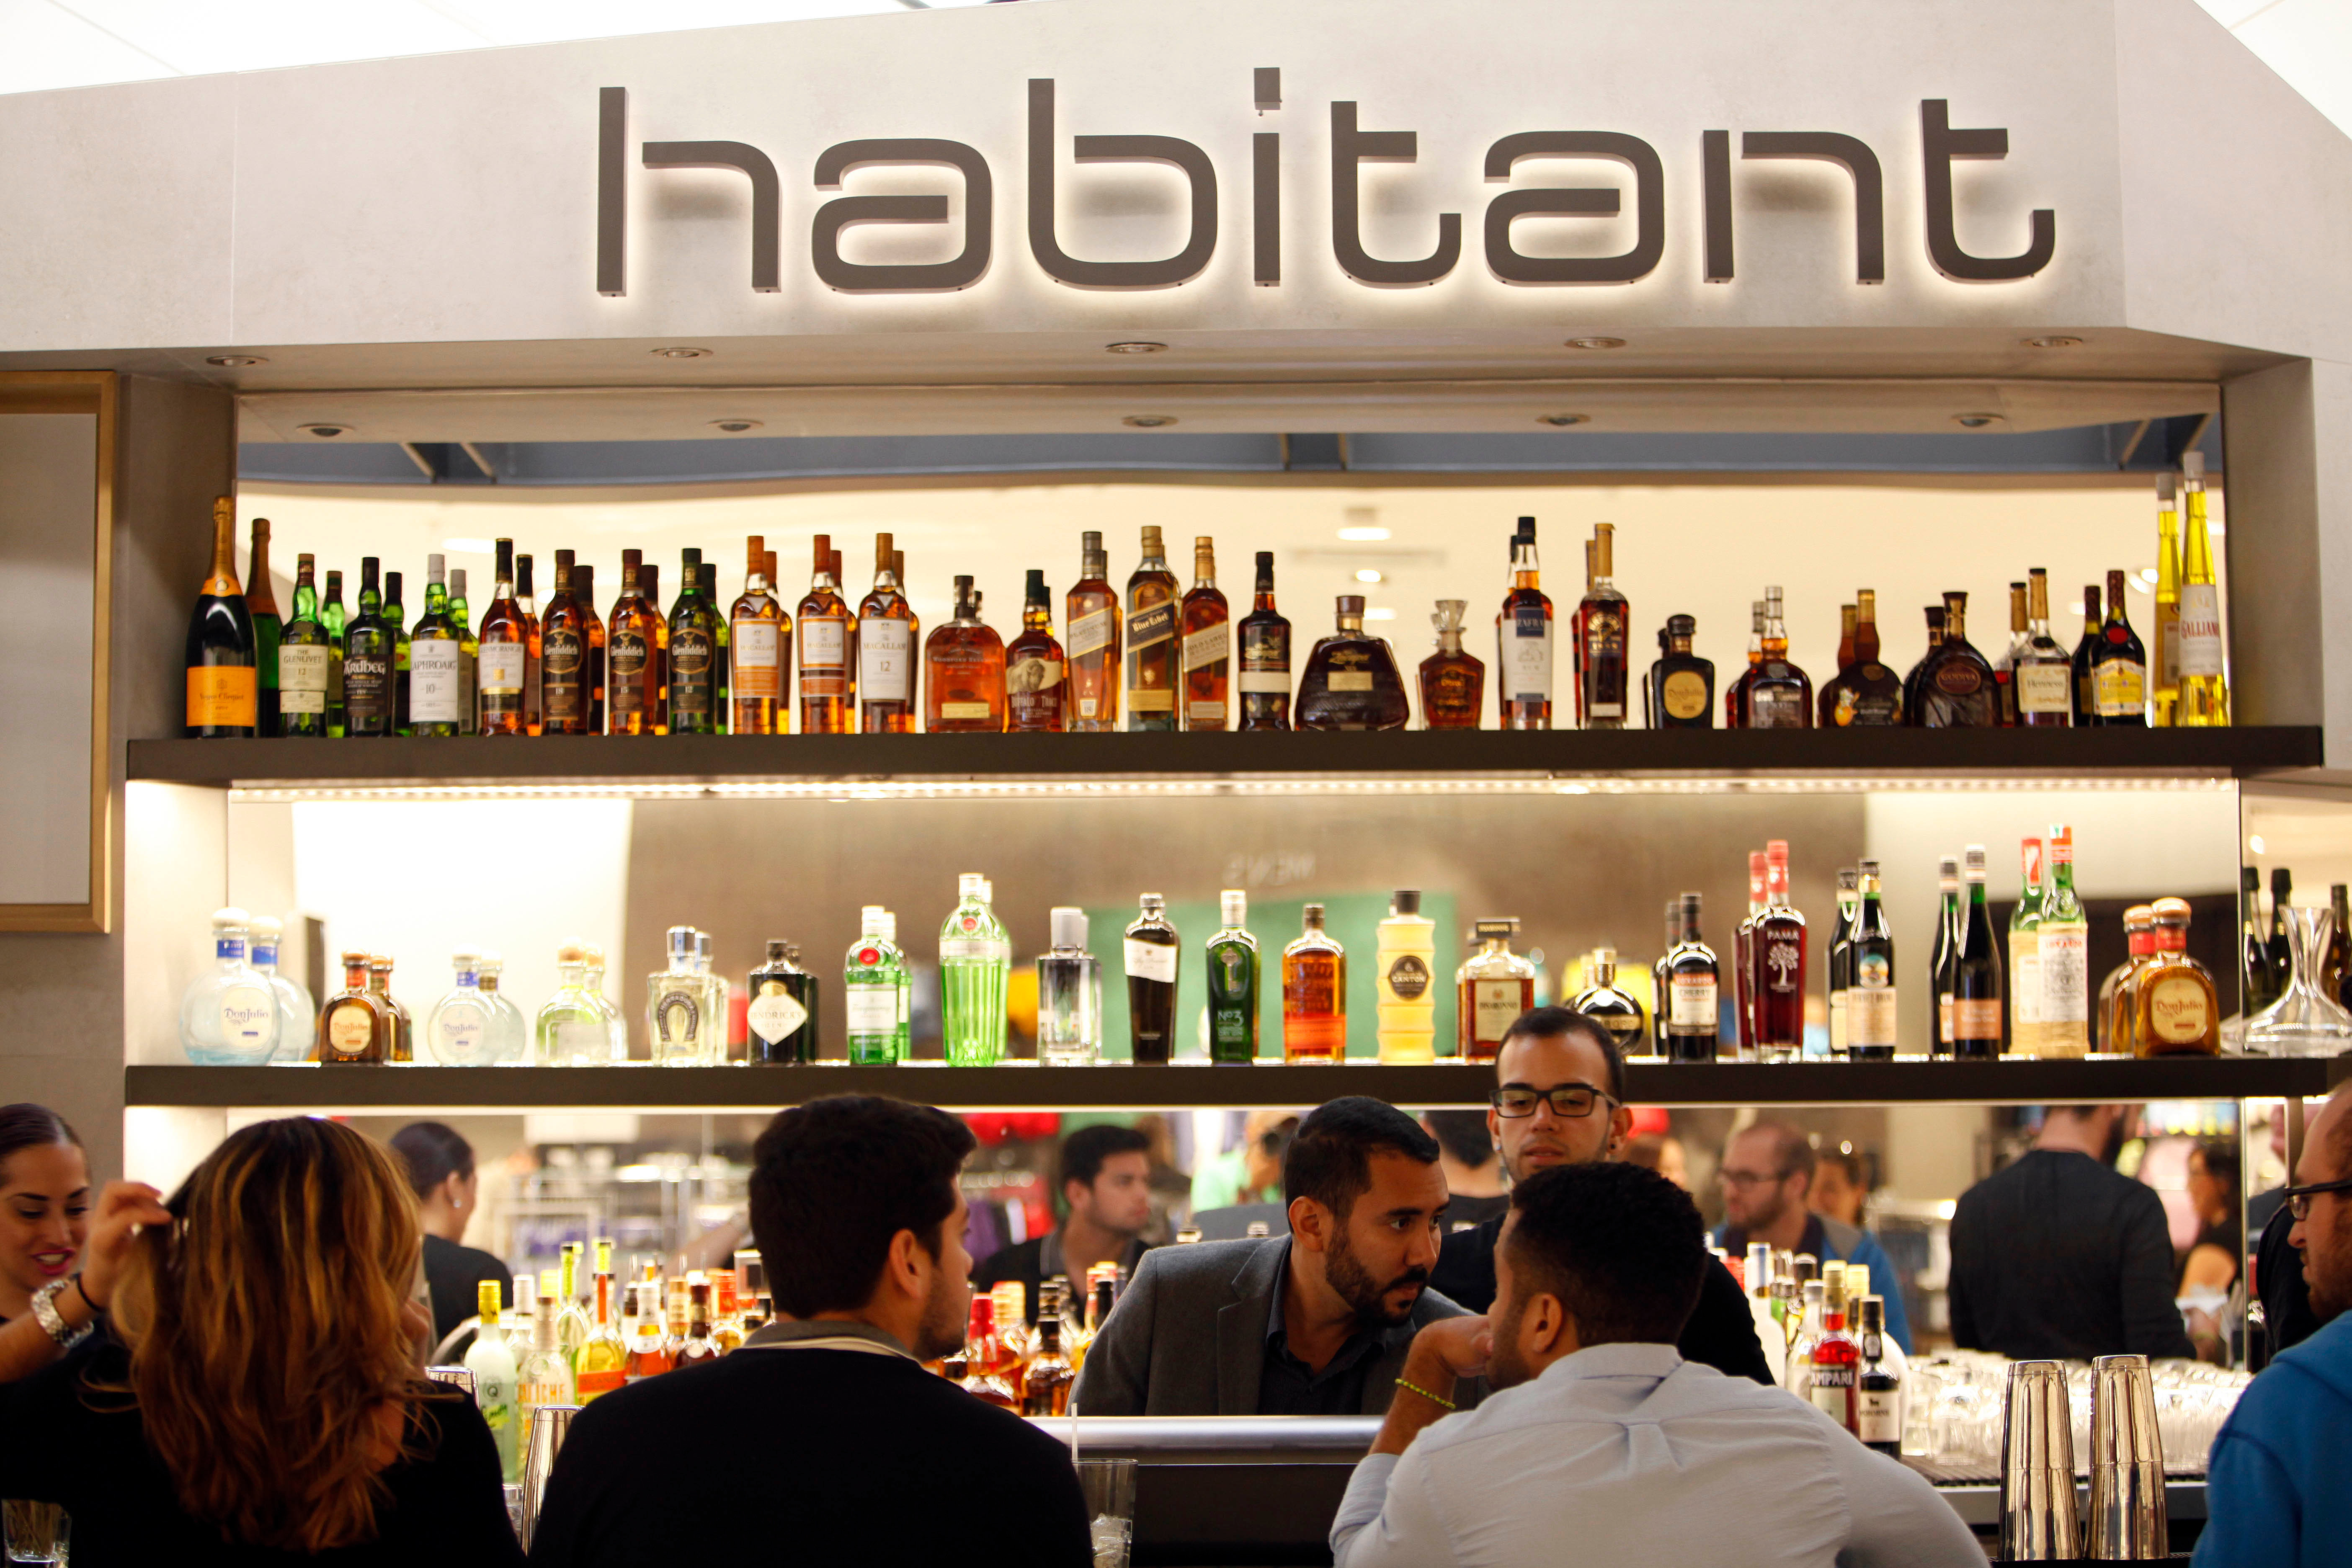 Customers order at the Habitant Restaurant inside Nordstrom, inside the newly built, The Mall of San Juan, in San Juan, Puerto Rico. Many Puerto Ricans do seem to have been busy shopping while the government struggles with $73 billion in public debt and U.S. investors worry some of island's public agencies could go bankruptPuerto Rico Luxury Shopping, San Juan, Puerto Rico